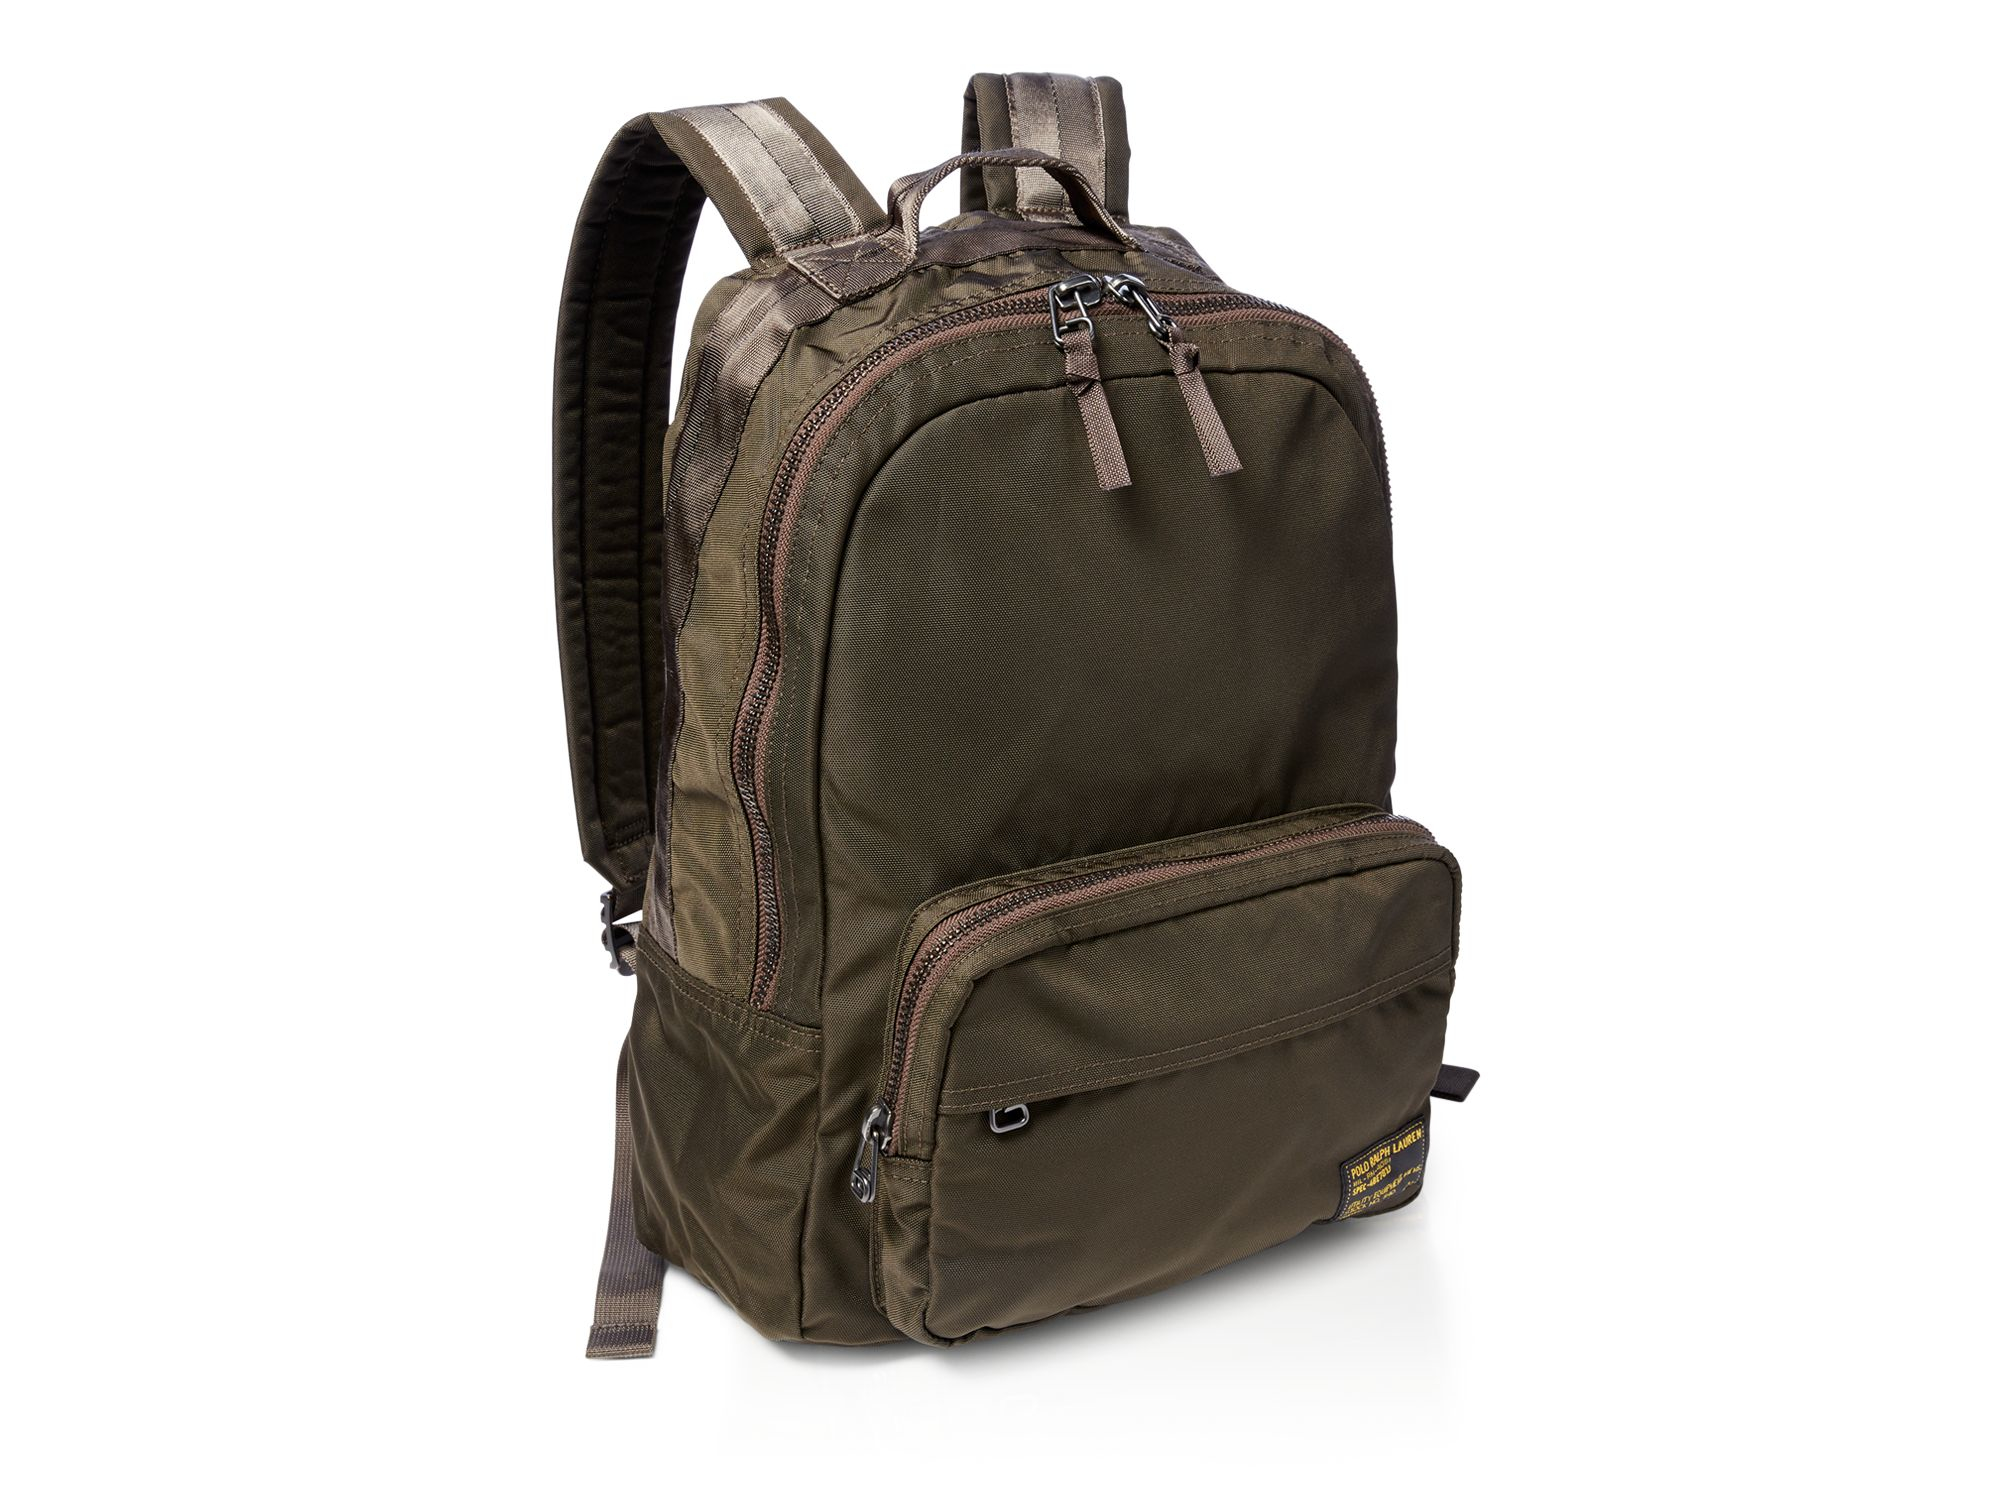 Lyst - Polo Ralph Lauren Nylon Military Backpack in Green for Men b222acc37ad81